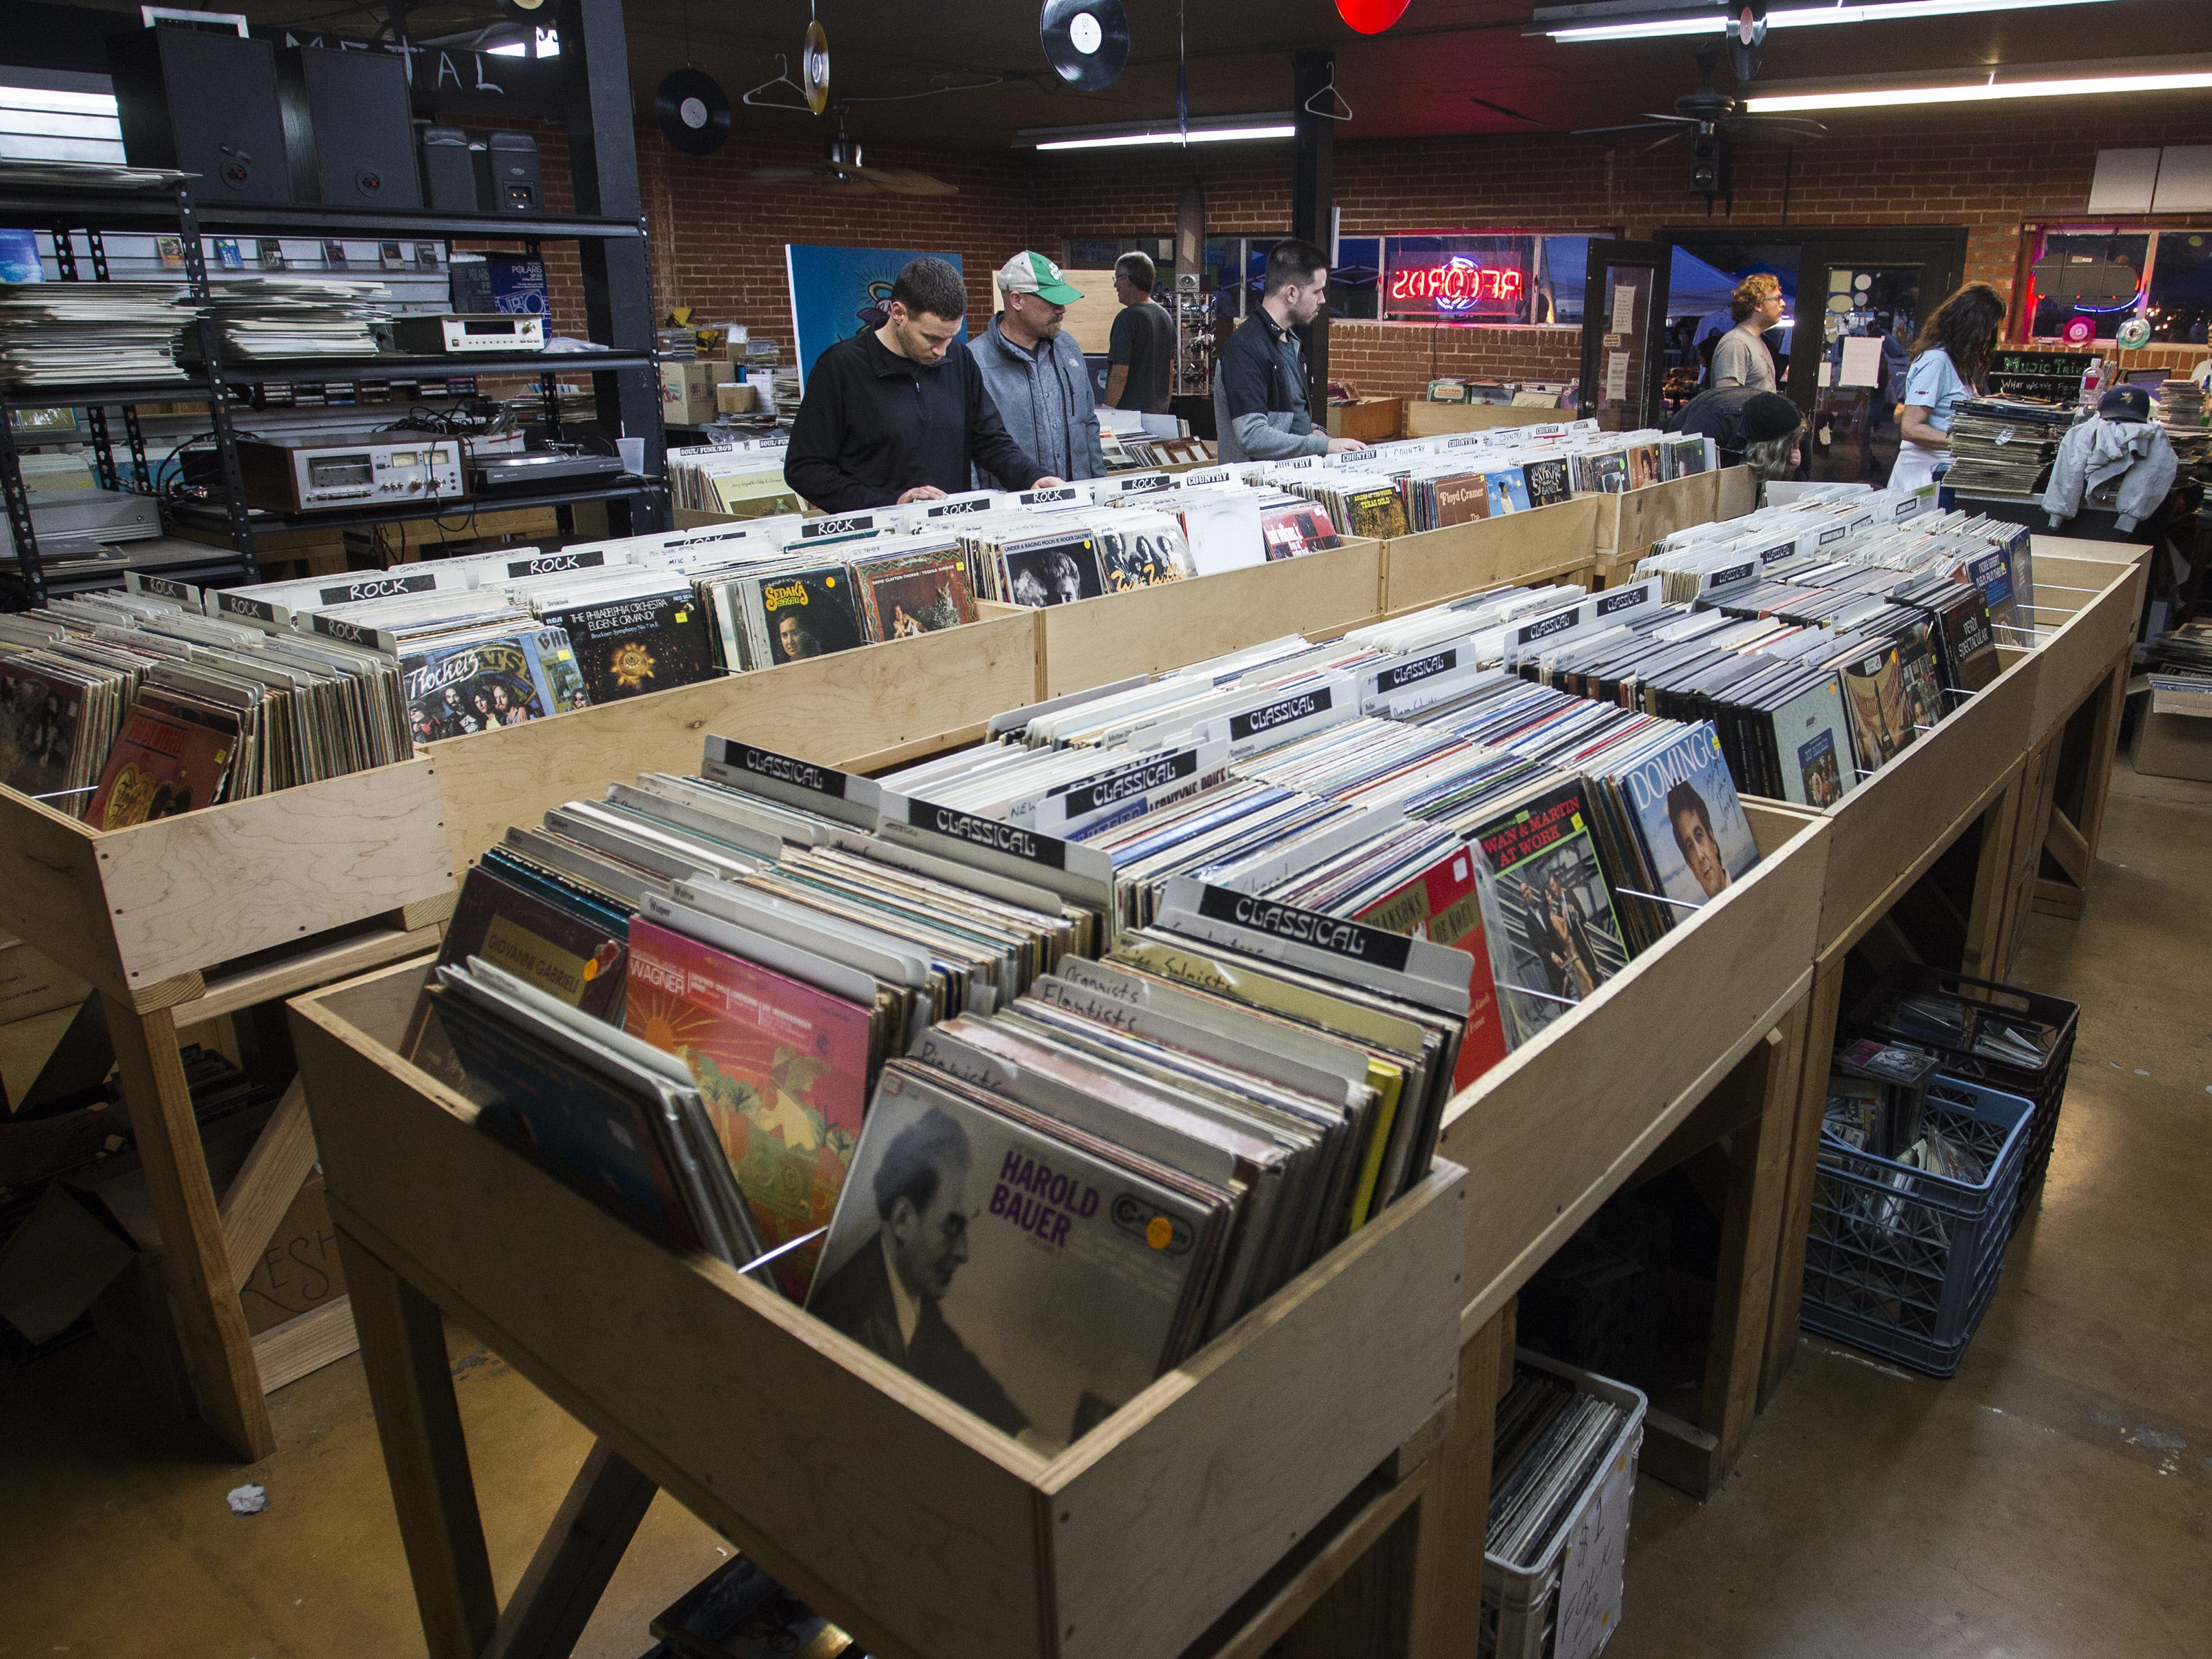 Music lovers sort through albums at Revolver Records in downtown Phoenix on First Friday.